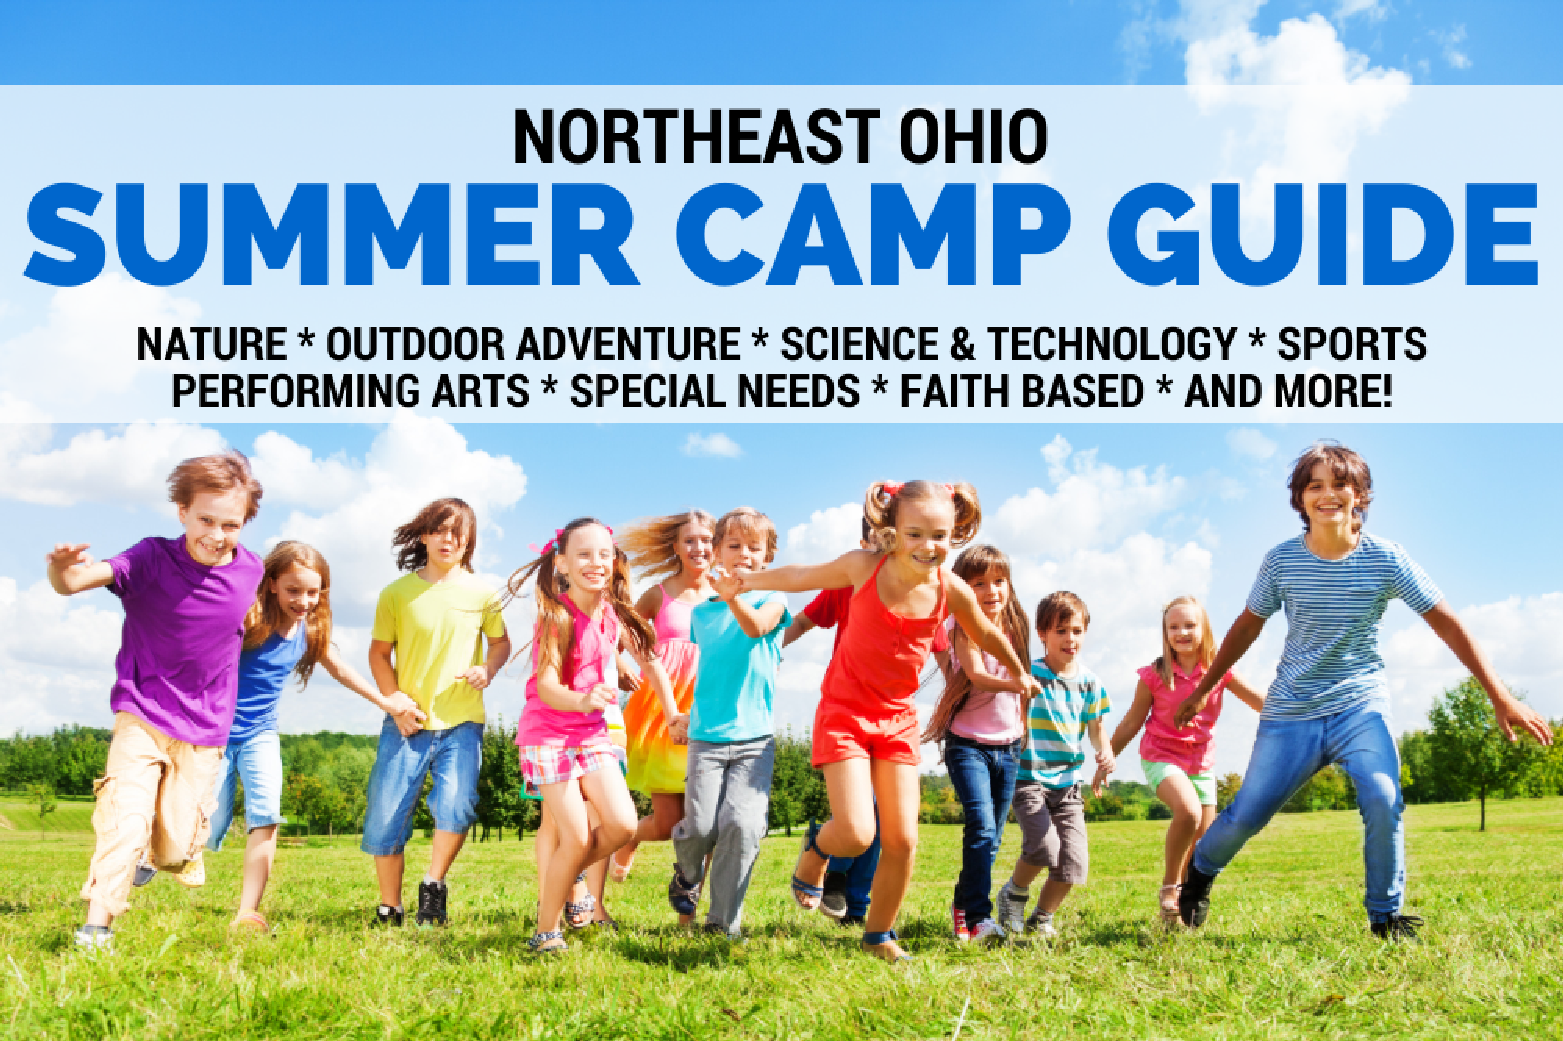 2017 Northeast Ohio Summer Camp Guide